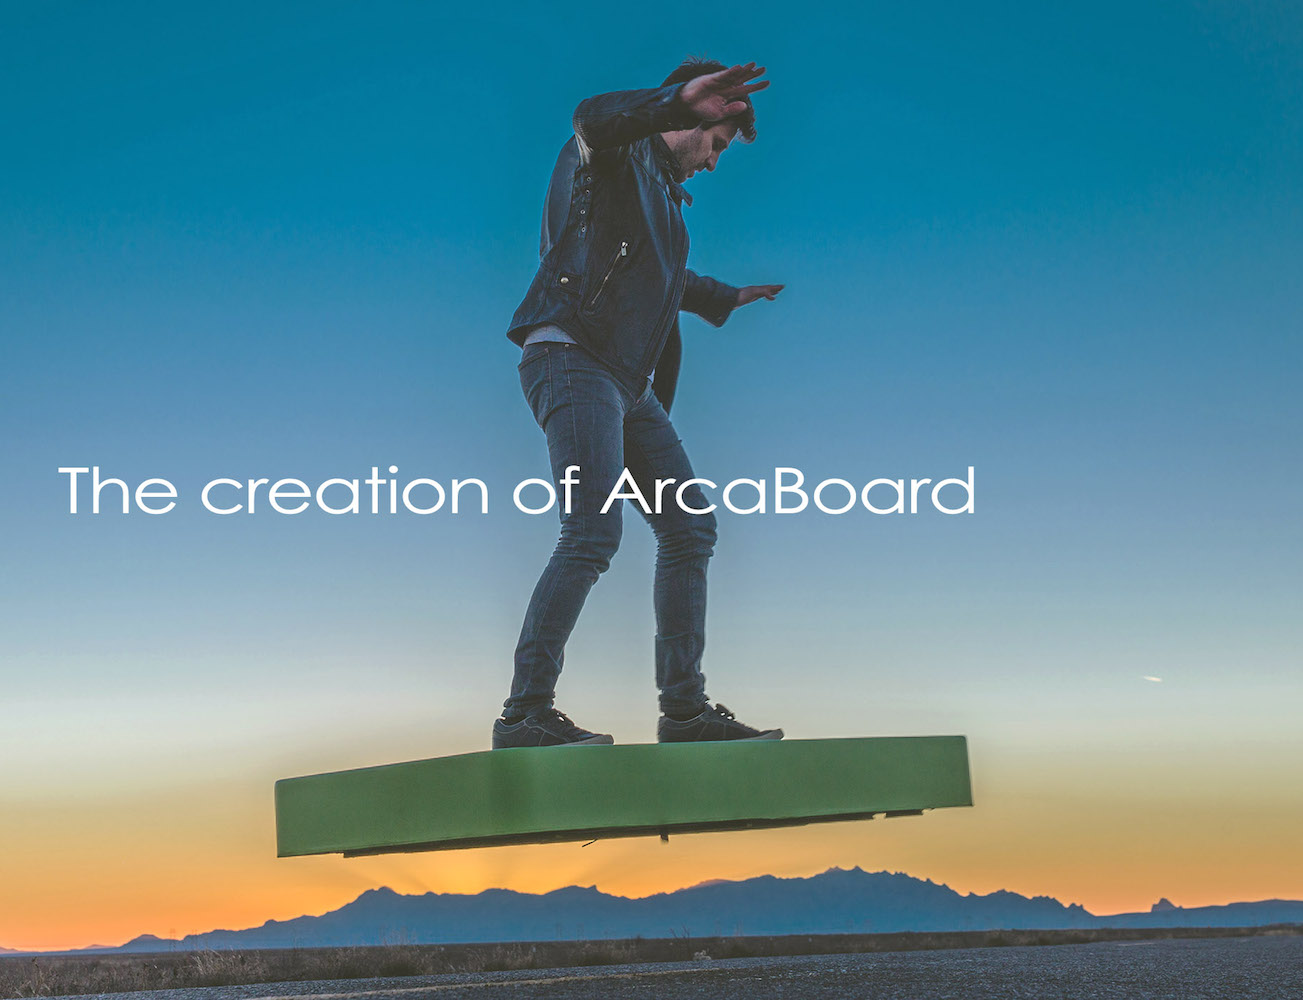 arcaboard-revolutionary-vehicle-that-lets-you-fly-in-air-01